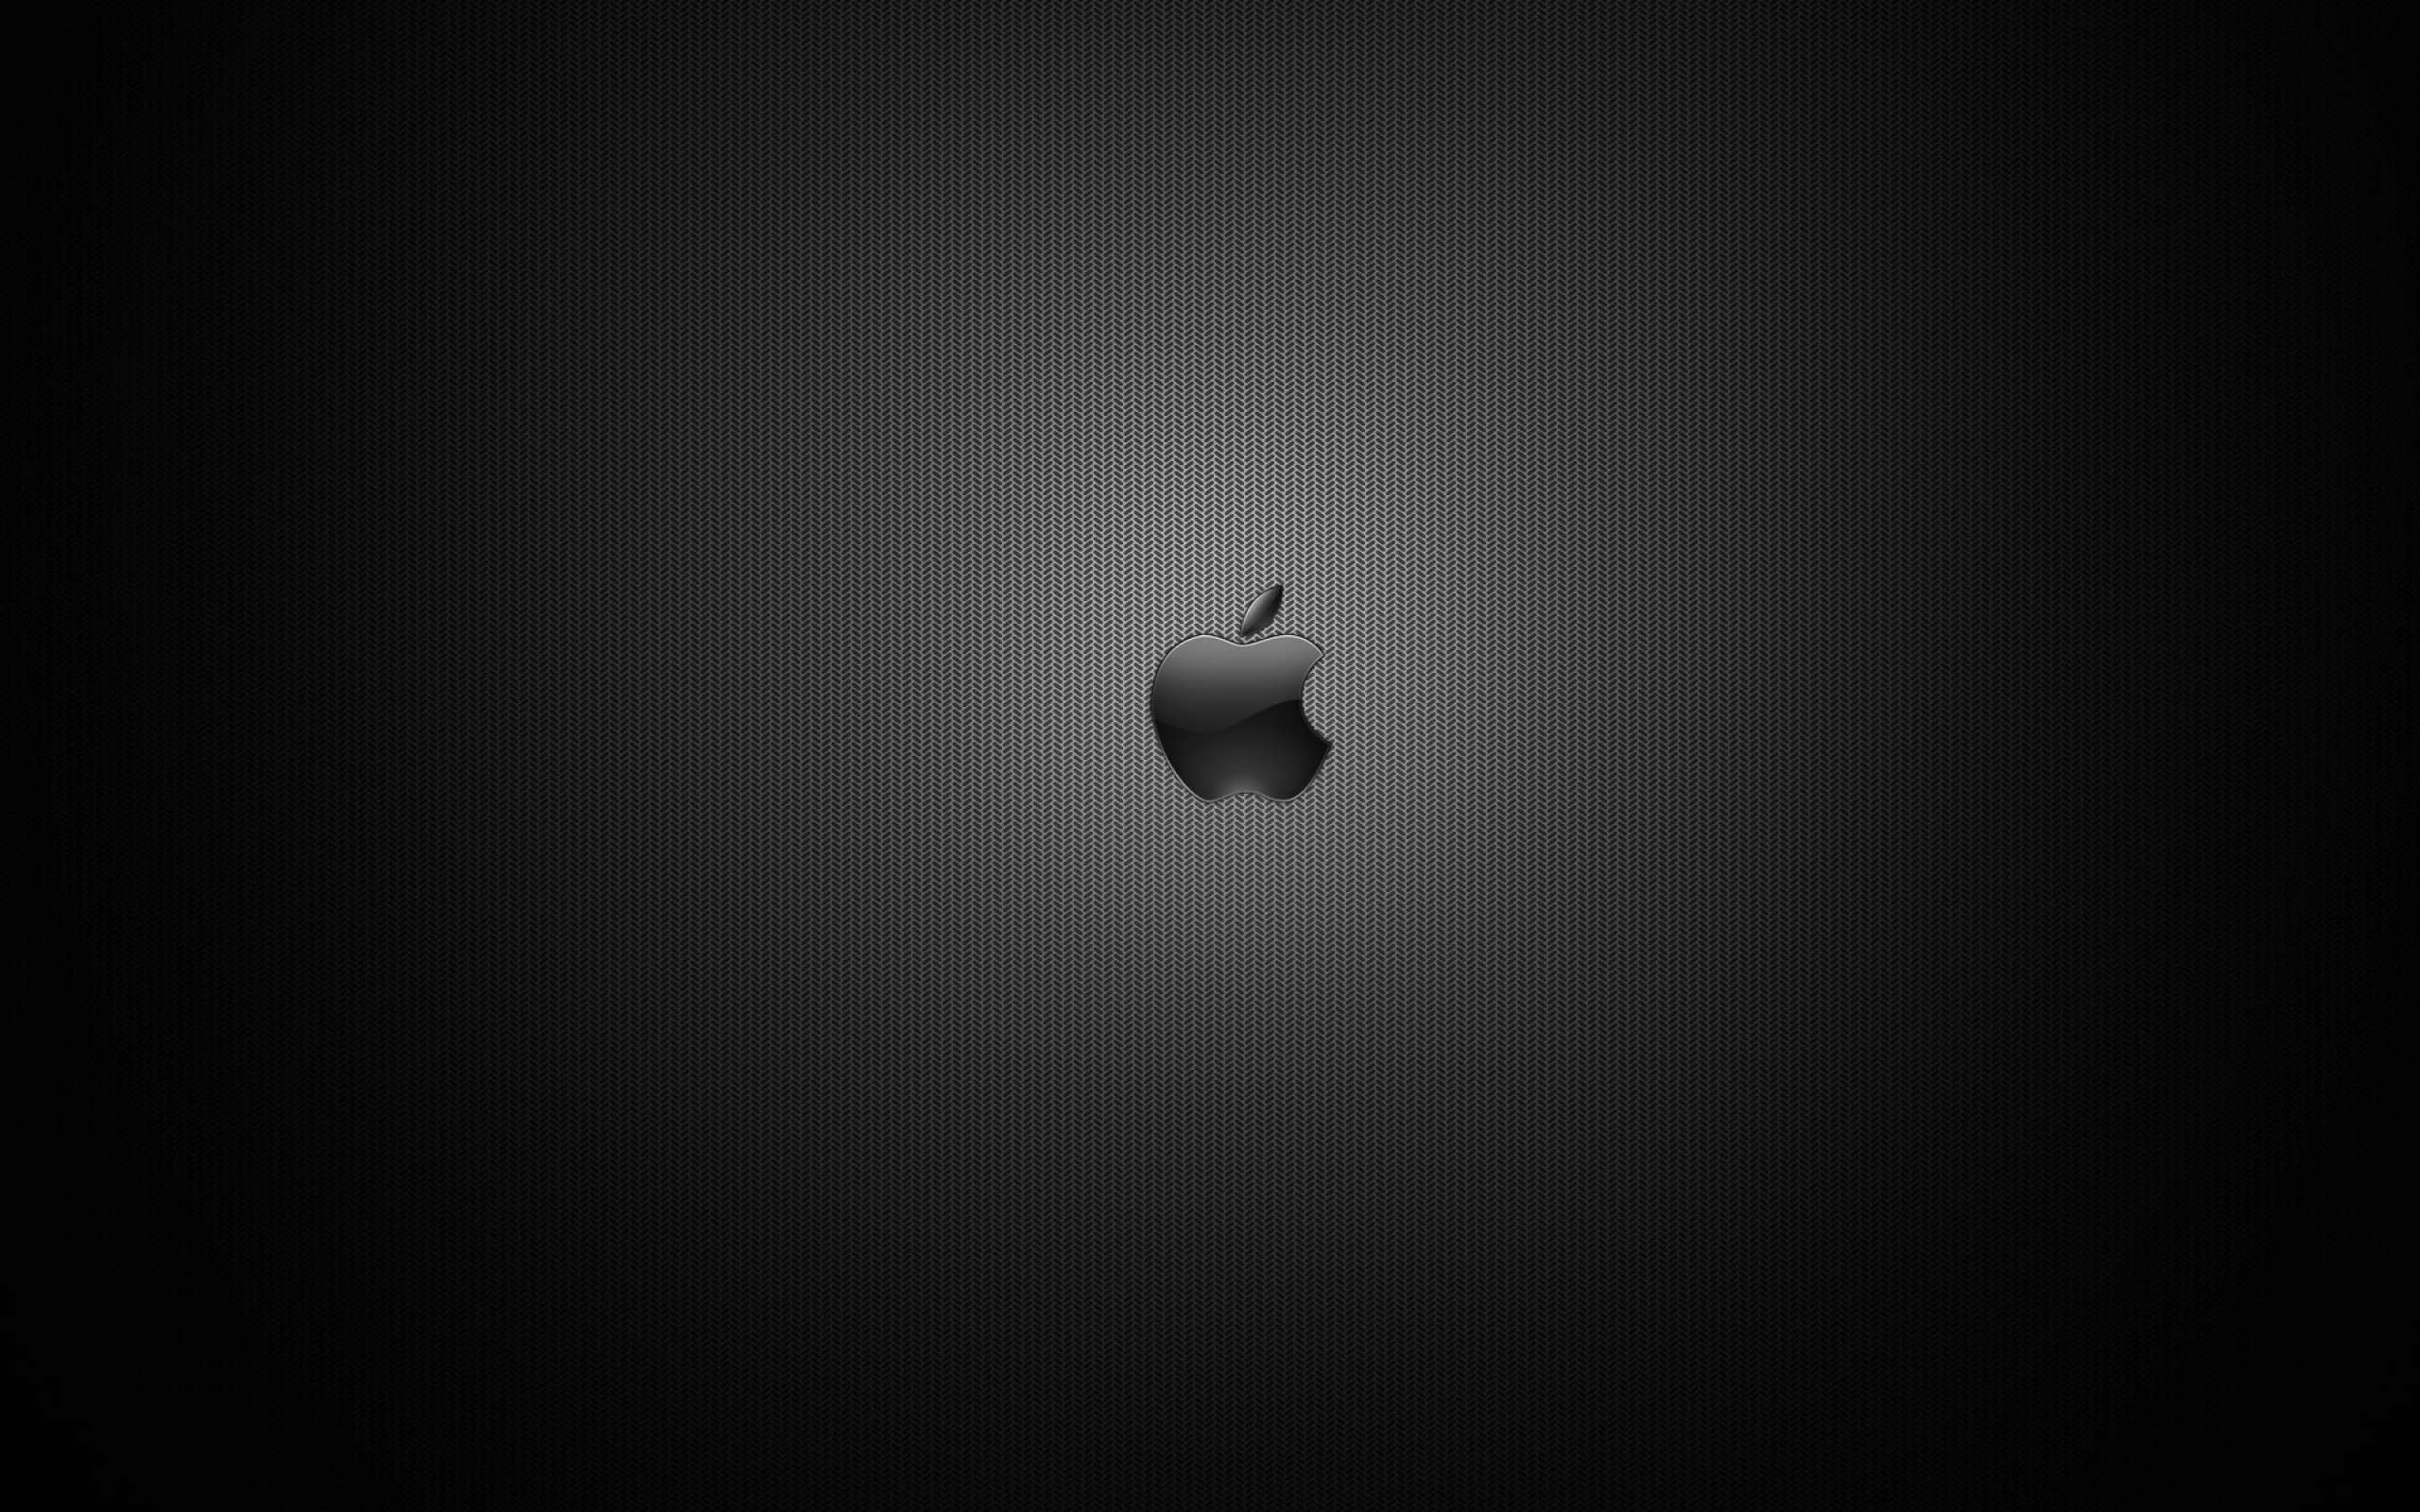 wallpapers for red apple logo wallpaper hd